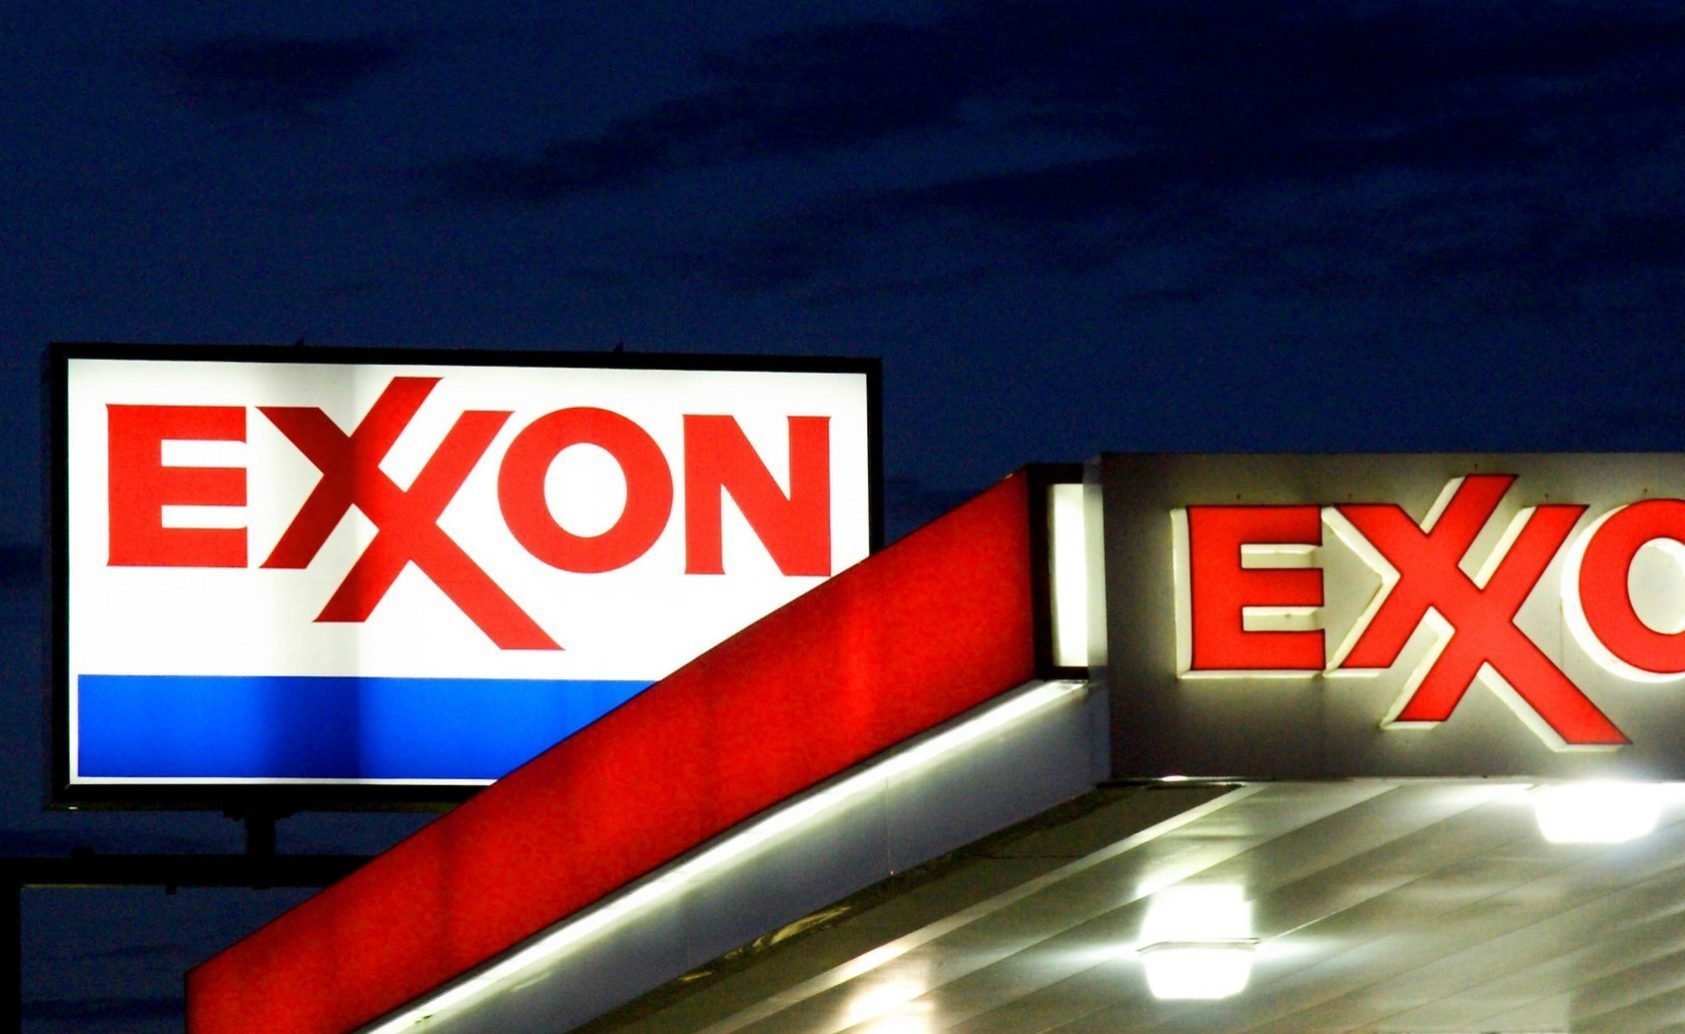 """(FILES) An Exxon sign is seen at a station in this September 20, 2008 file photo in Manassas, Virginia. US oil giant ExxonMobil on July 31, 2014 reported higher second-quarter profits despite pumping less oil and gas than it did a year ago. Exxon, the biggest US oil company and the second-largest US company in terms of market capitalization after Apple, said earnings came in at $8.8 billion, up 28 percent from the year-ago level. """"ExxonMobil's financial results were achieved through strong operational performance and portfolio management,"""" said chief executive Rex Tillerson. """"We continue to enhance shareholder value by funding capital projects and delivering robust shareholder returns through dividends and share purchases."""" Results translated into earnings per share of $2.05, 19 cents above analyst forecasts.AFP PHOTO/Karen BLEIER/FILESKAREN BLEIER/AFP/Getty Images ** OUTS - ELSENT, FPG - OUTS * NM, PH, VA if sourced by CT, LA or MoD **"""